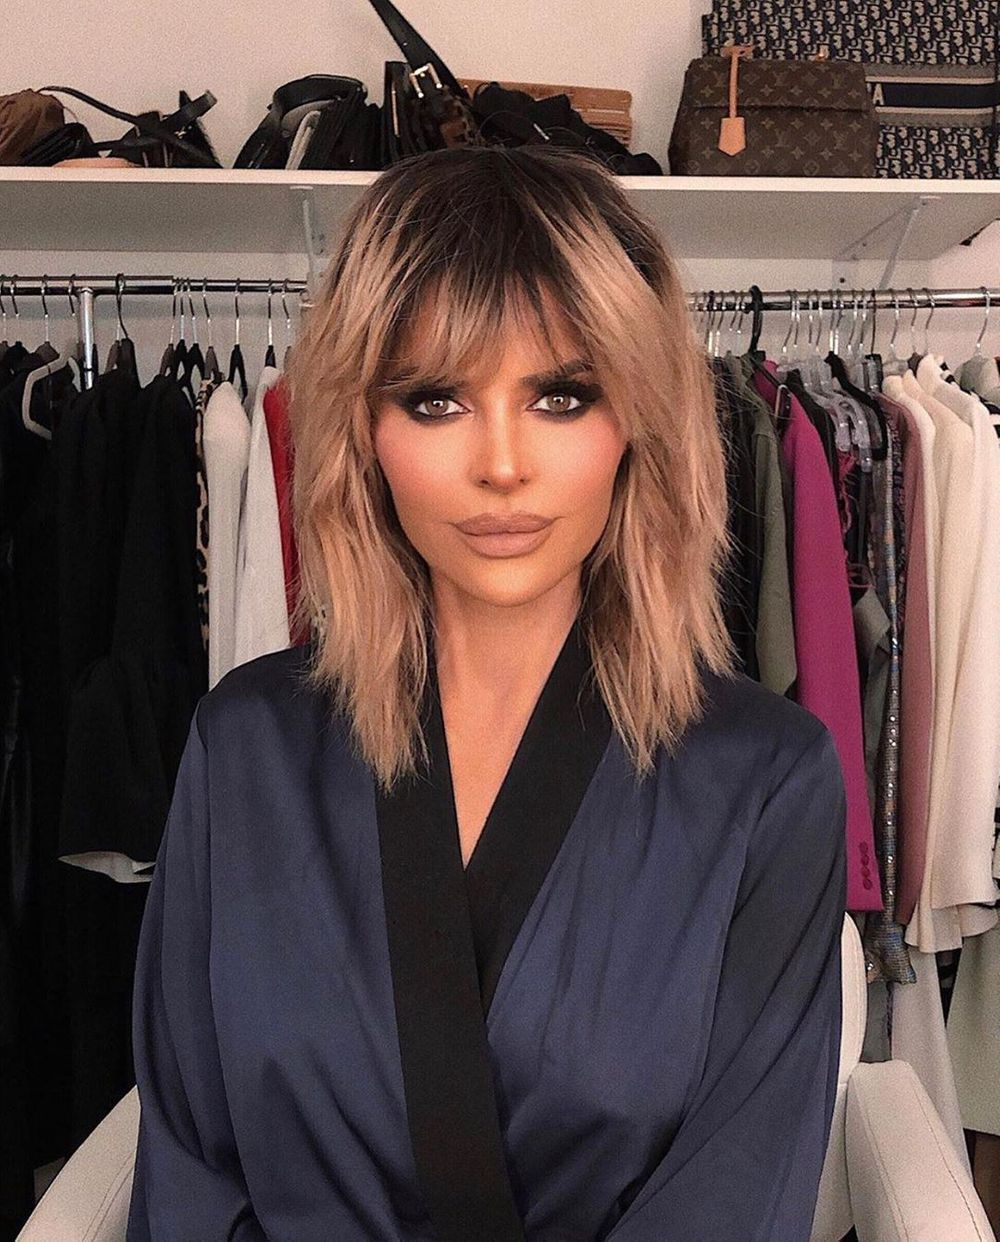 Lisa Rinna in a robe